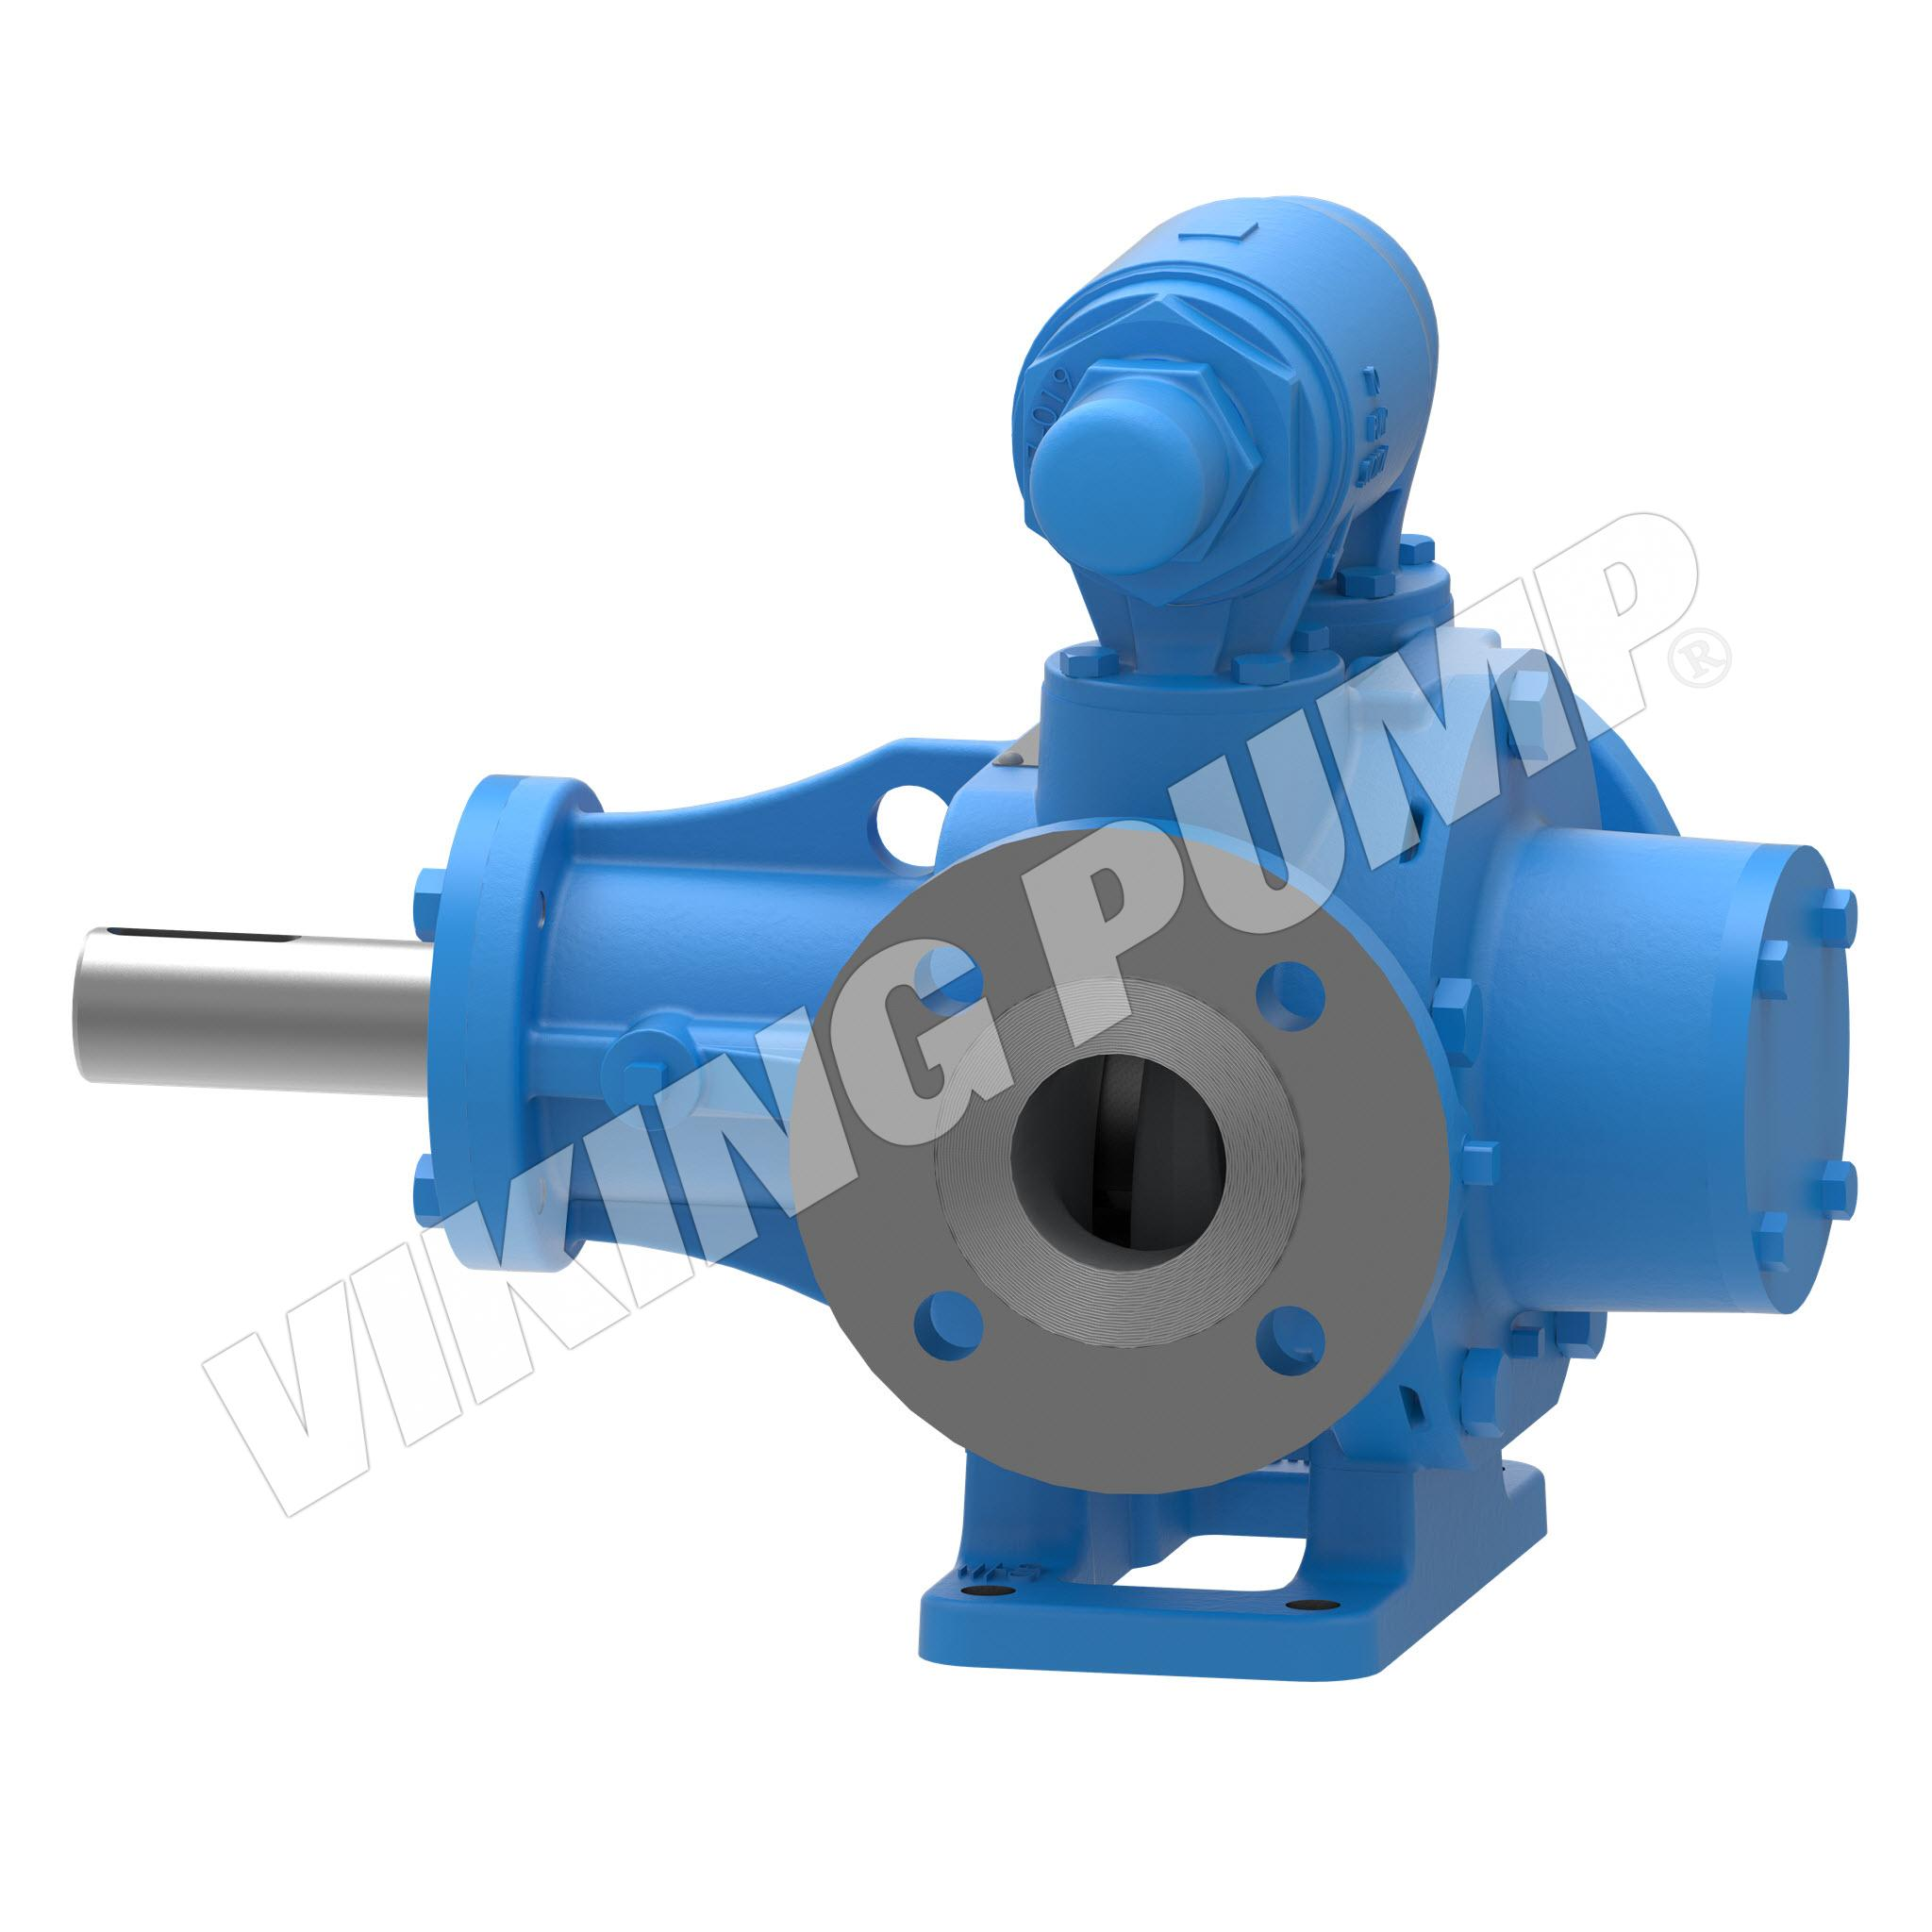 Model LVP41057U, Foot-Mounted, Mechanical Seal, Relief Valve Pump